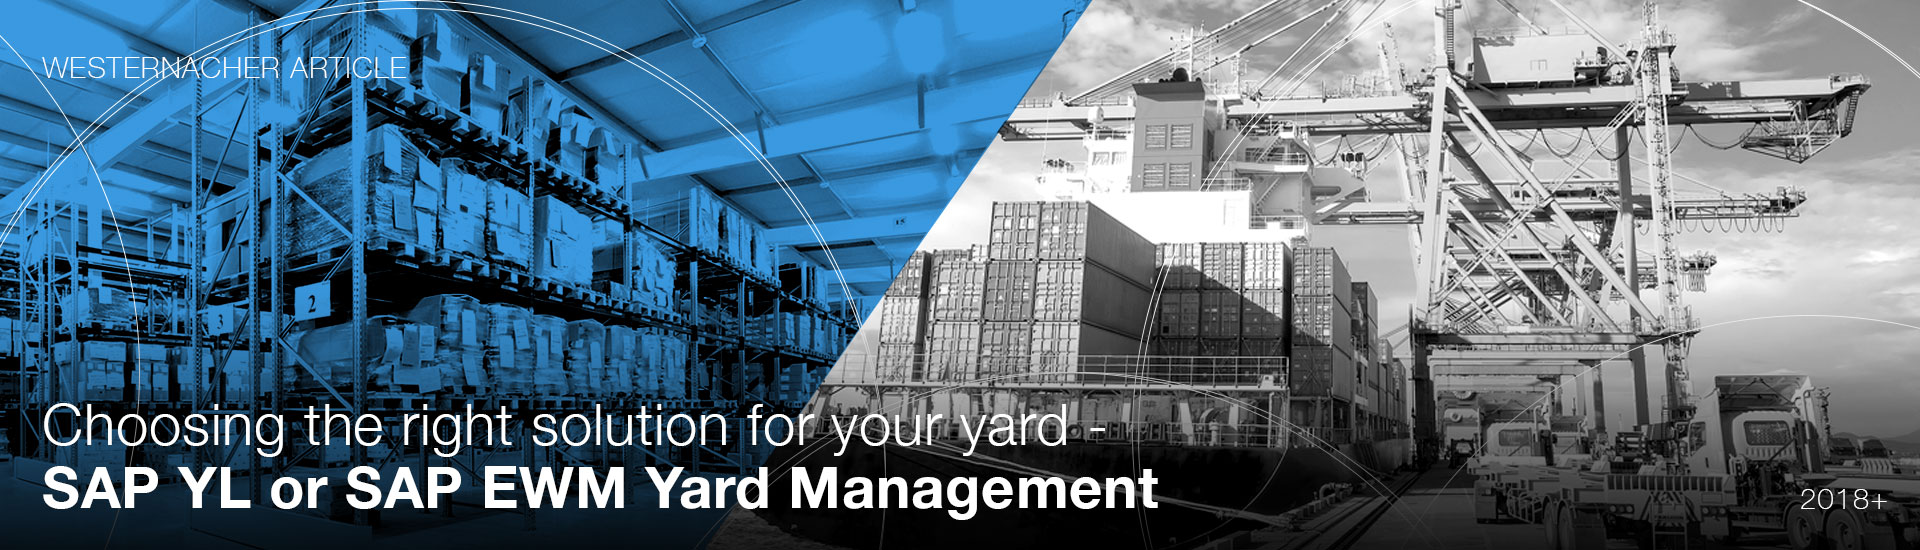 Choosing the right solution for your yard - SAP YL or SAP EWM Yard Management | westernacher-consulting.com